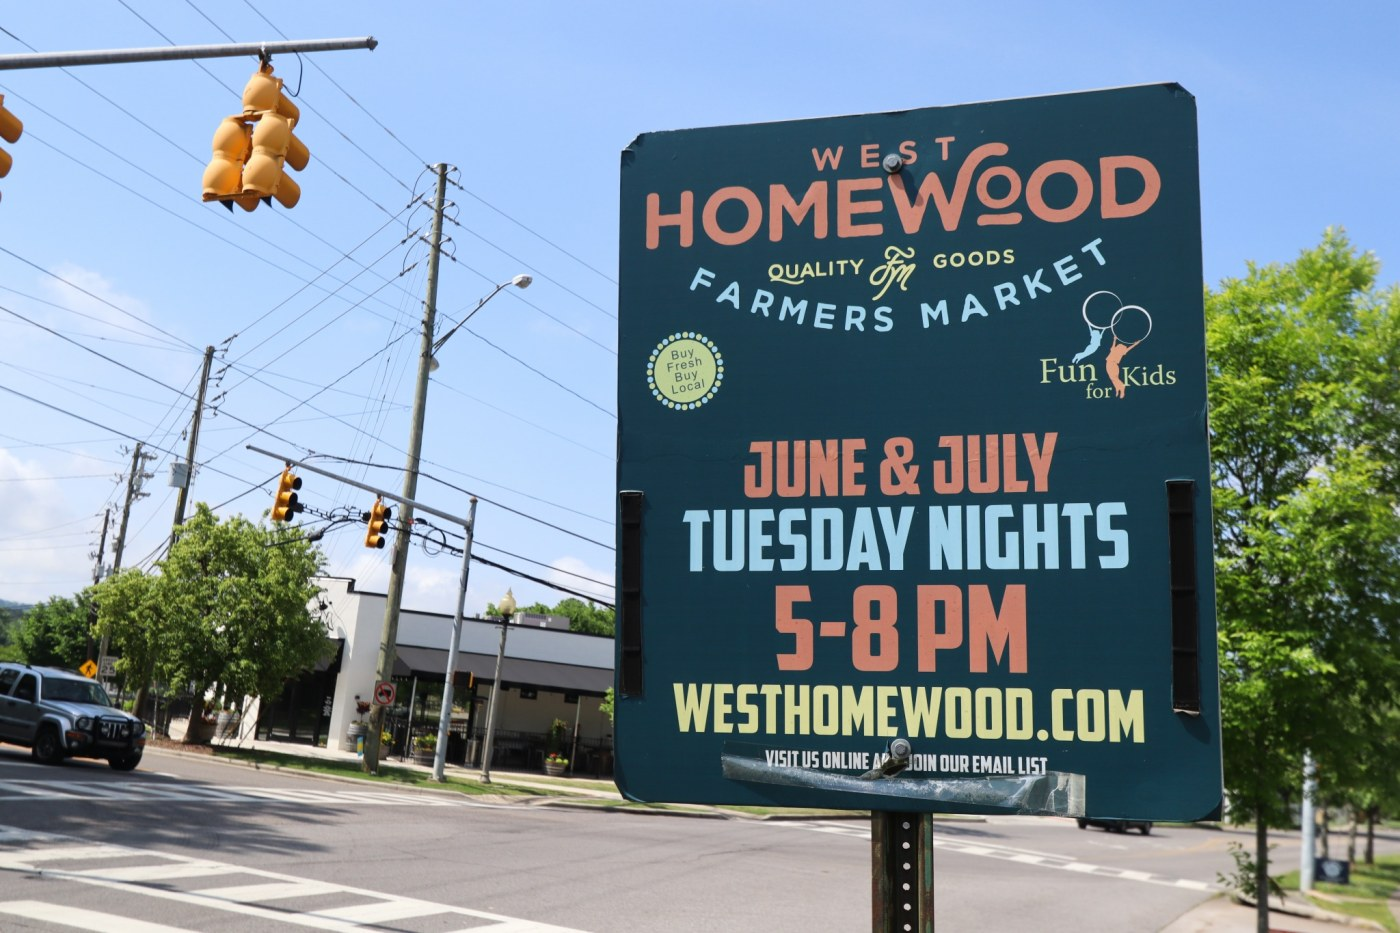 West Homewood Farmers Market sign. (Photo by Christine Hull for Bham Now)